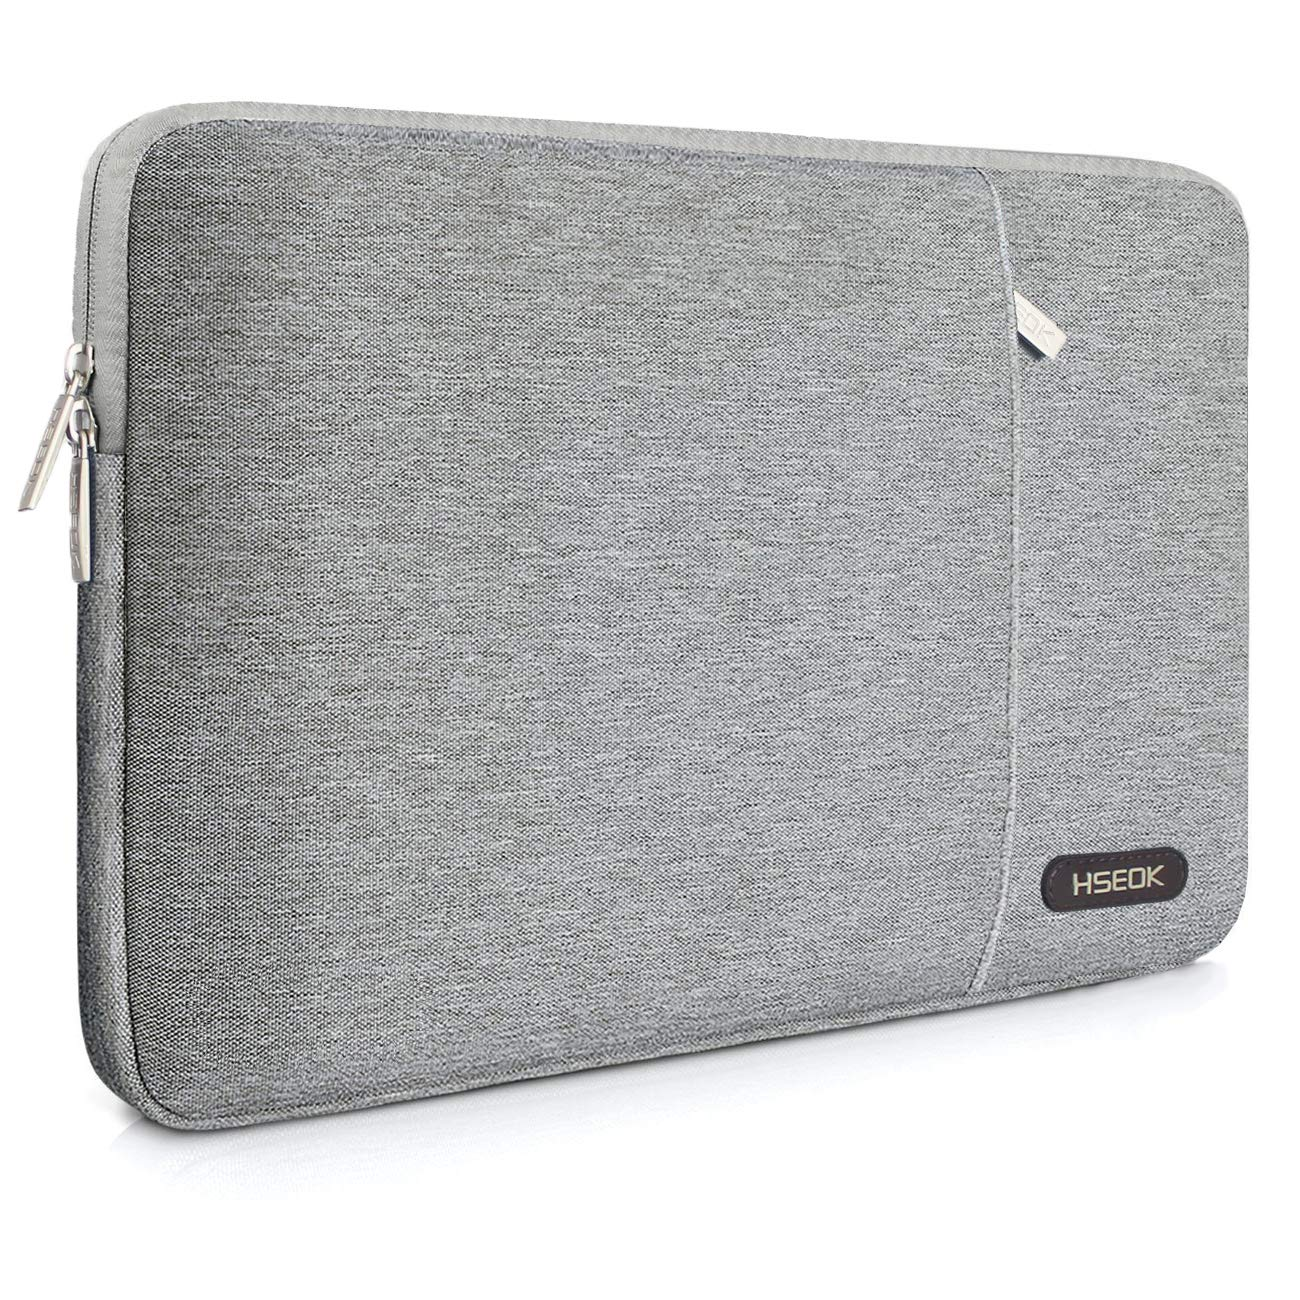 Compatible iPad Pro 9.7 // iPad Pro 10.5 // iPad Pro 11 // Surface Go 2018 // MacBook 12 Gray HSEOK Laptop Sleeve 10.5 Inch Case Water-Resistant Shockproof Bag Cover